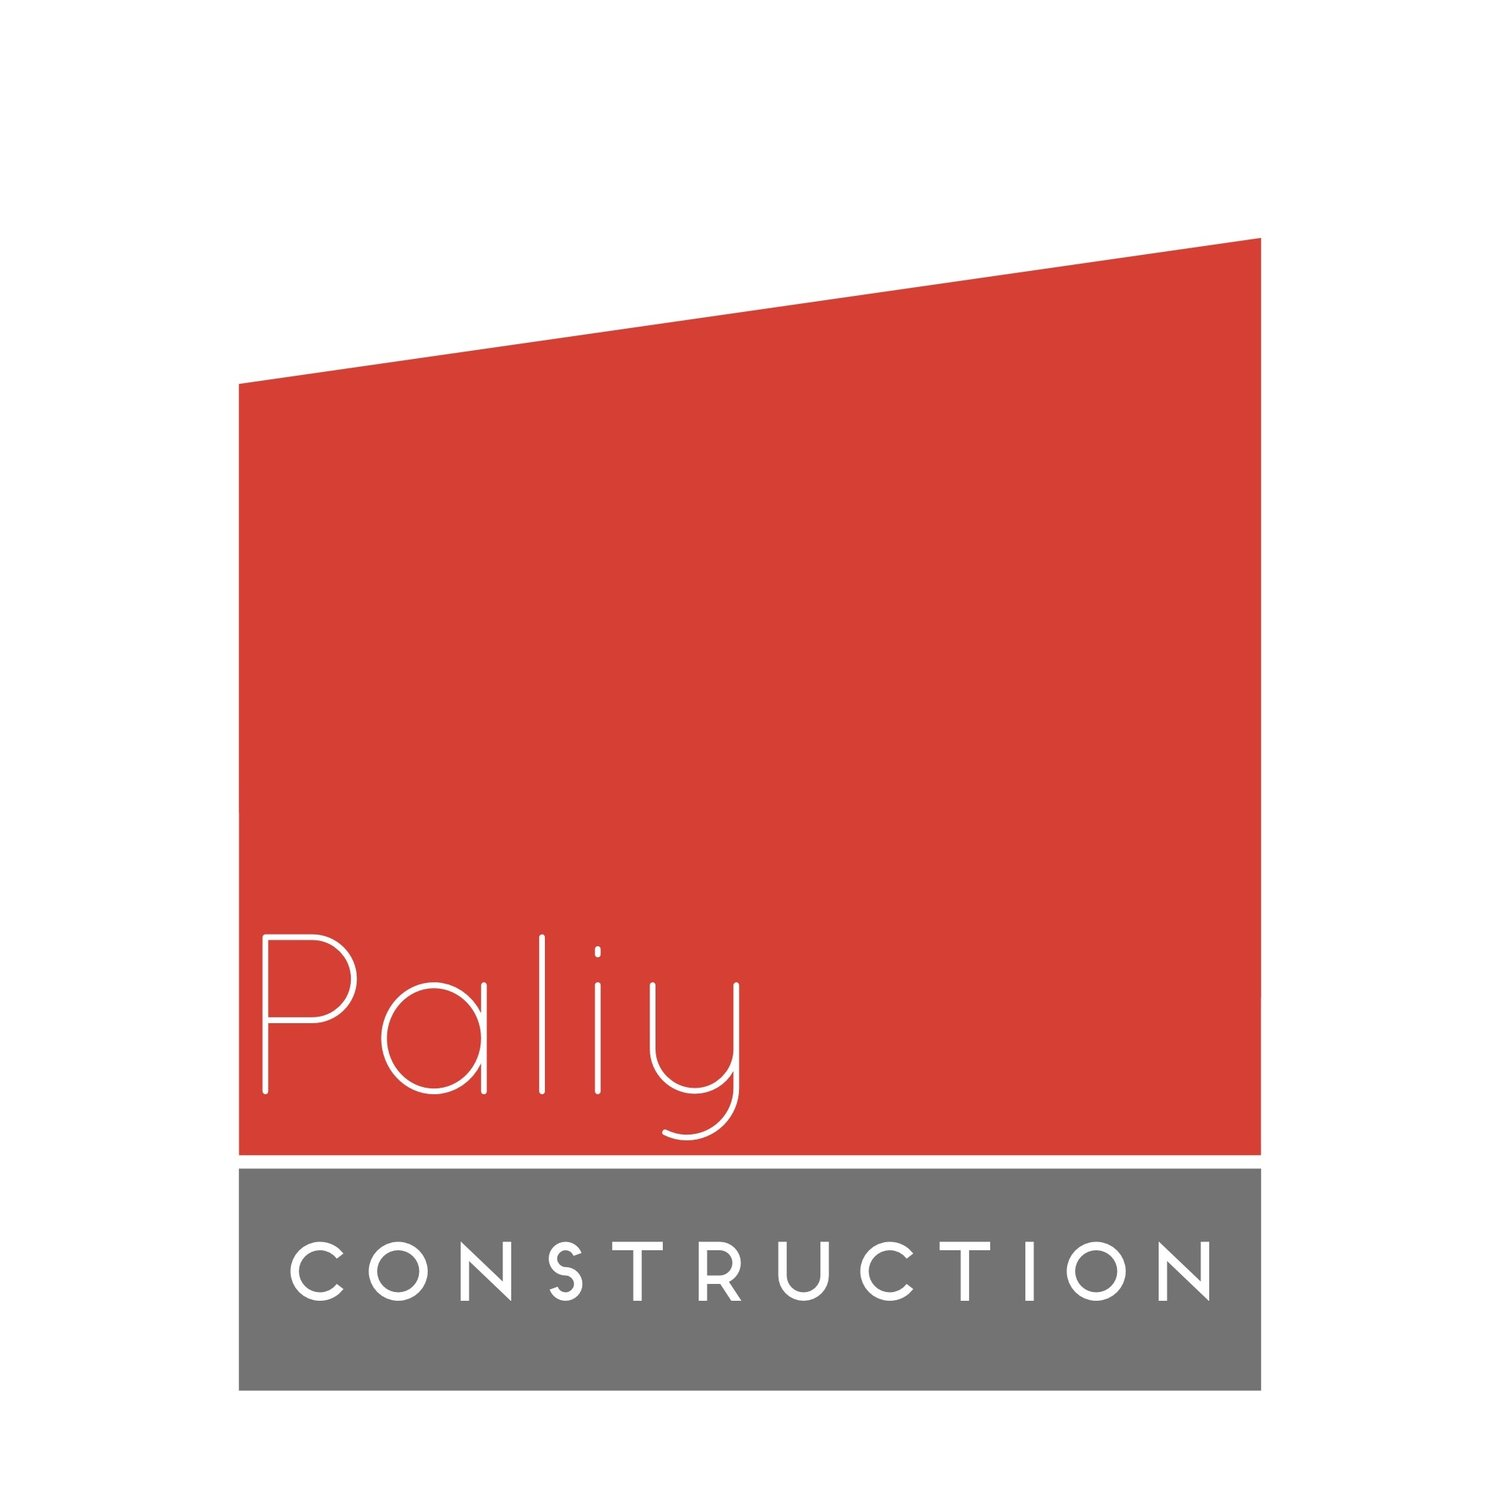 Paliy Construction